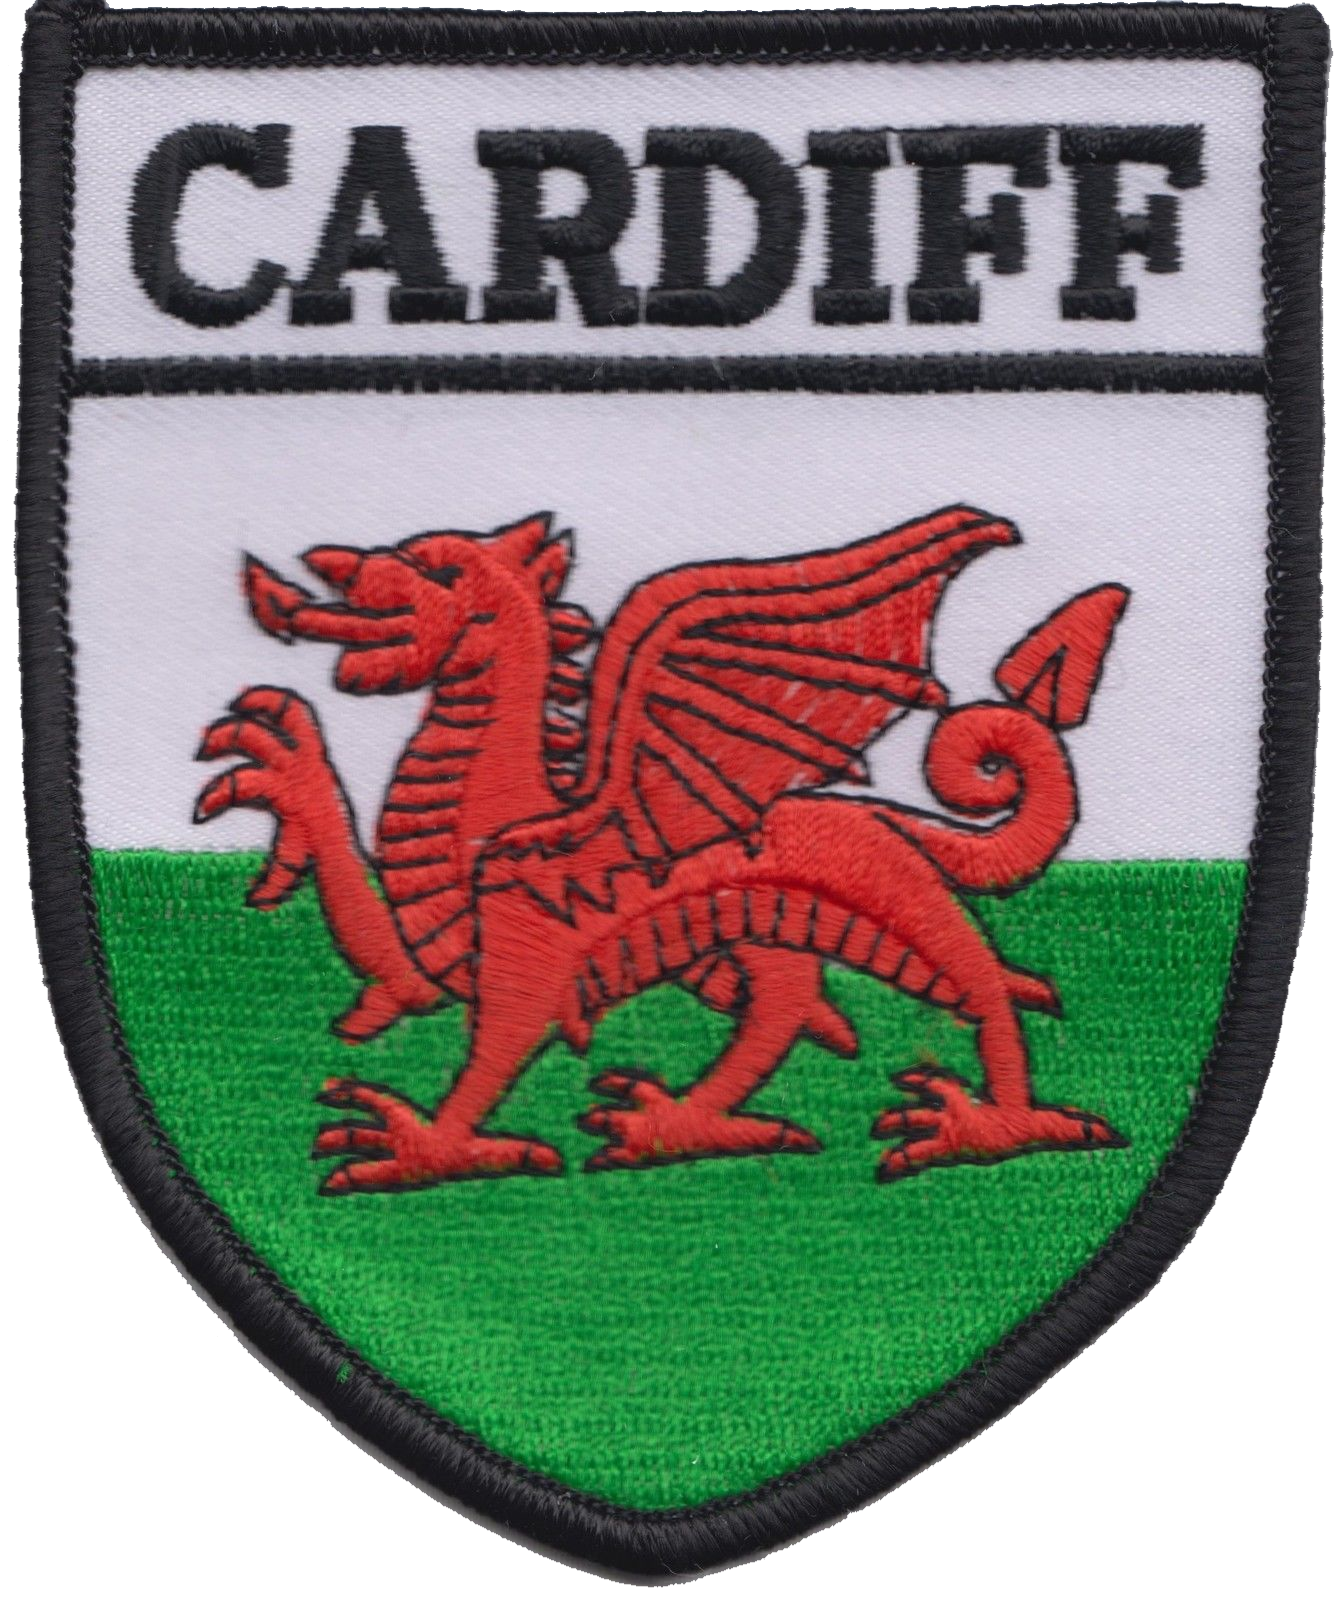 cardiff-welsh-dragon-large-shield-embroidered-patch-a076-36708-p